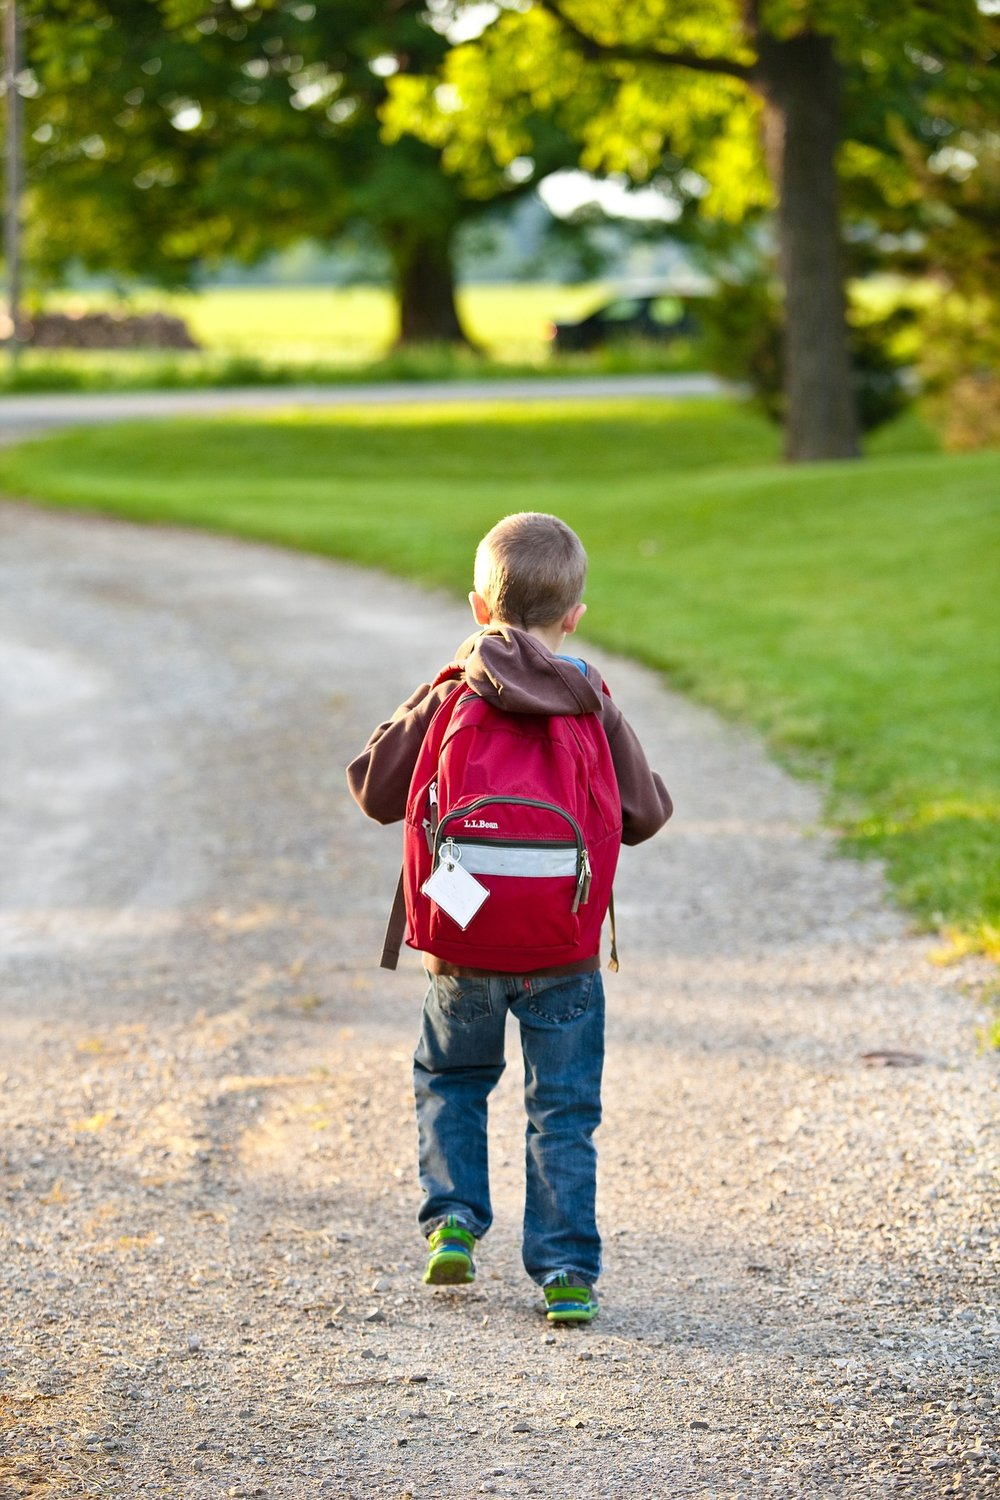 Our Story - With experience dealing with school districts, we know that many are looking for a way to support good behavior and promote positive messages throughout the school district. Everyone would like to implement a program like PBIS, but the question is how to fund it. Already being in the business of  decorated apparel and signs, we thought there must be a way that BeeGraphix can help encourage the implementation of these programs.This is why we started PBIS Signs & Banners, a division of BeeGraphix. This division features a website full of ideas and options for signage, banners and awards recommended by the PBIS program. It also features a way to fund the program through our creative fundraising progam and the BeeGraphix Giveback Program.With help from our company to fund the program and supply the products, we can make PBIS Programs possible in every school district.Learn more ➝